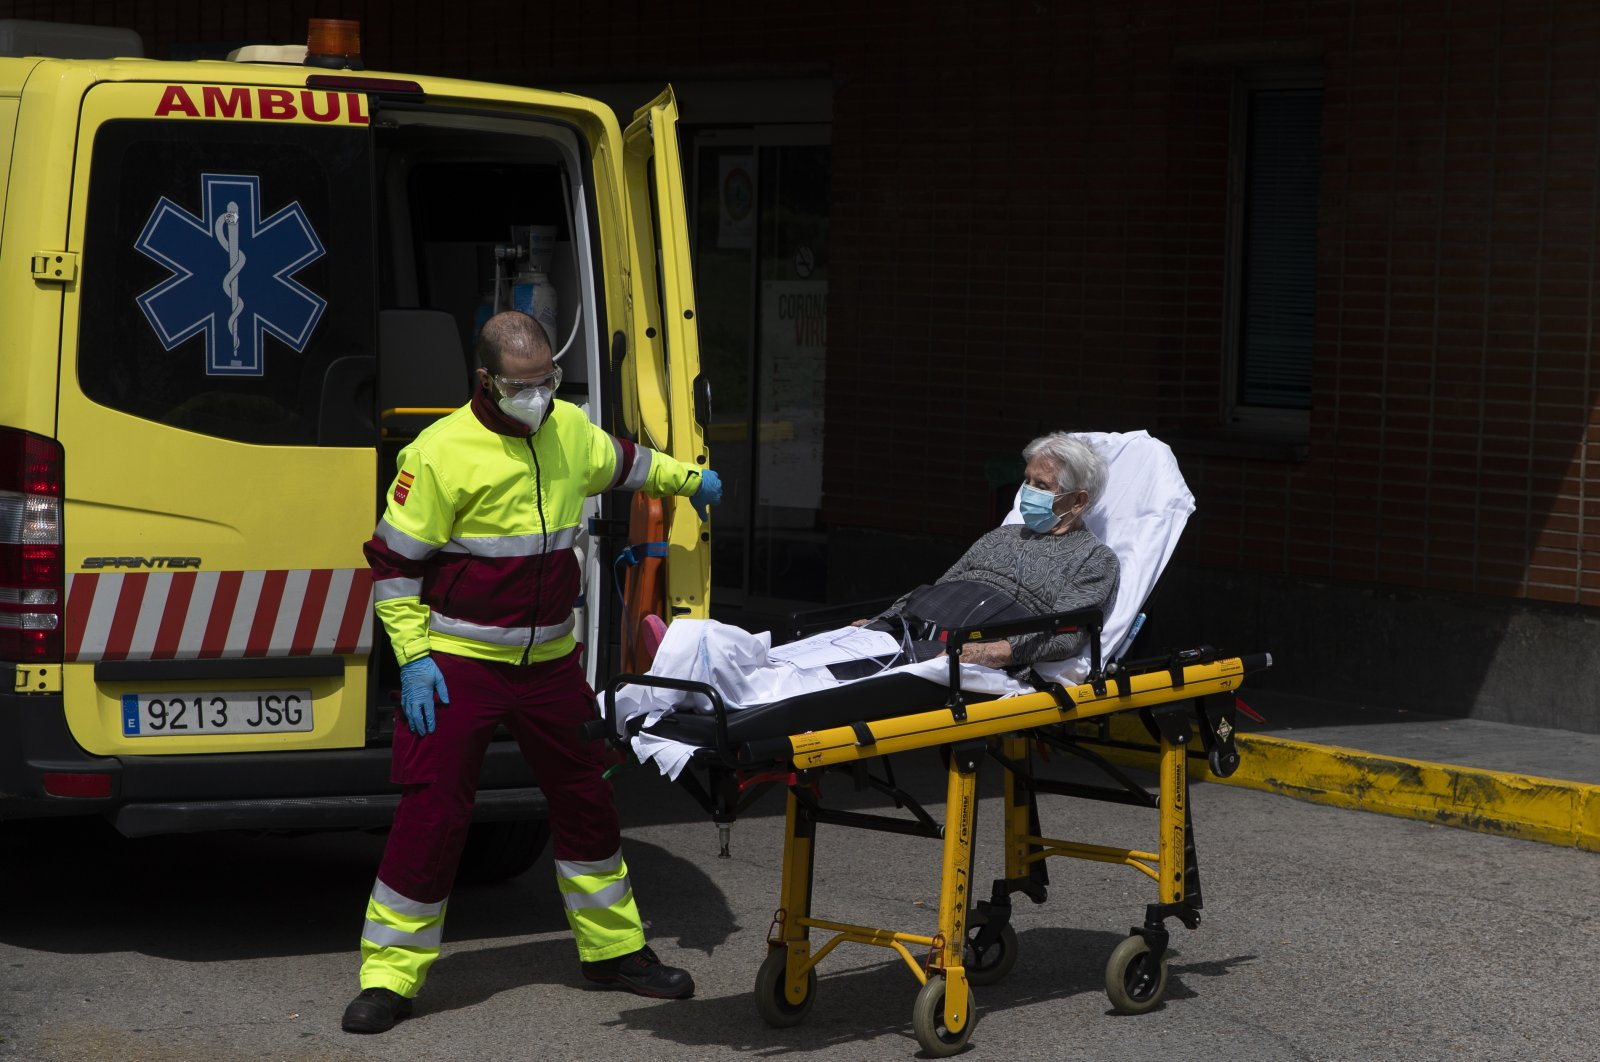 An emergency worker wearing a face mask transports an elderly patient to an ambulance at the Severo Ochoa Hospital in Leganes, Spain, April 18, 2020. (AP Photo)